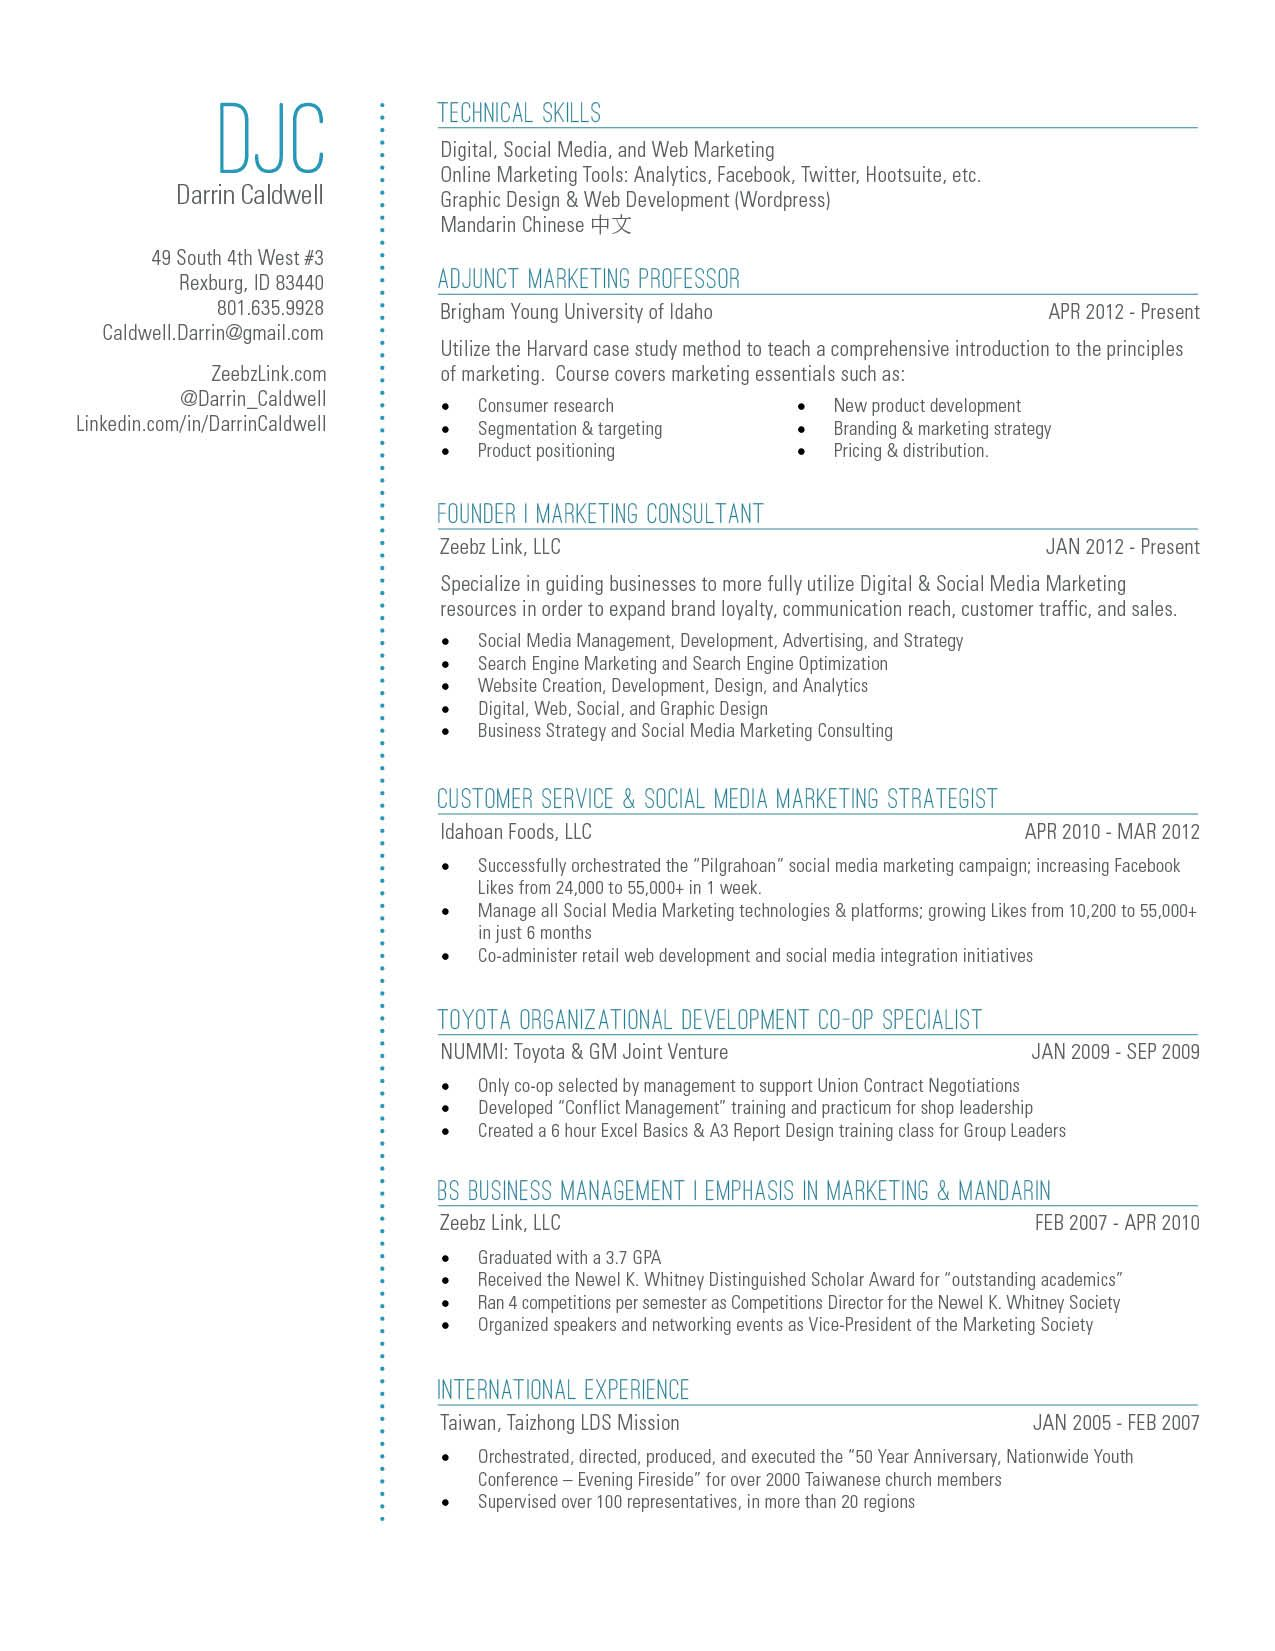 Elegant My New #resume #design! With A Touch Of Blue. :) # Pertaining To My New Resume